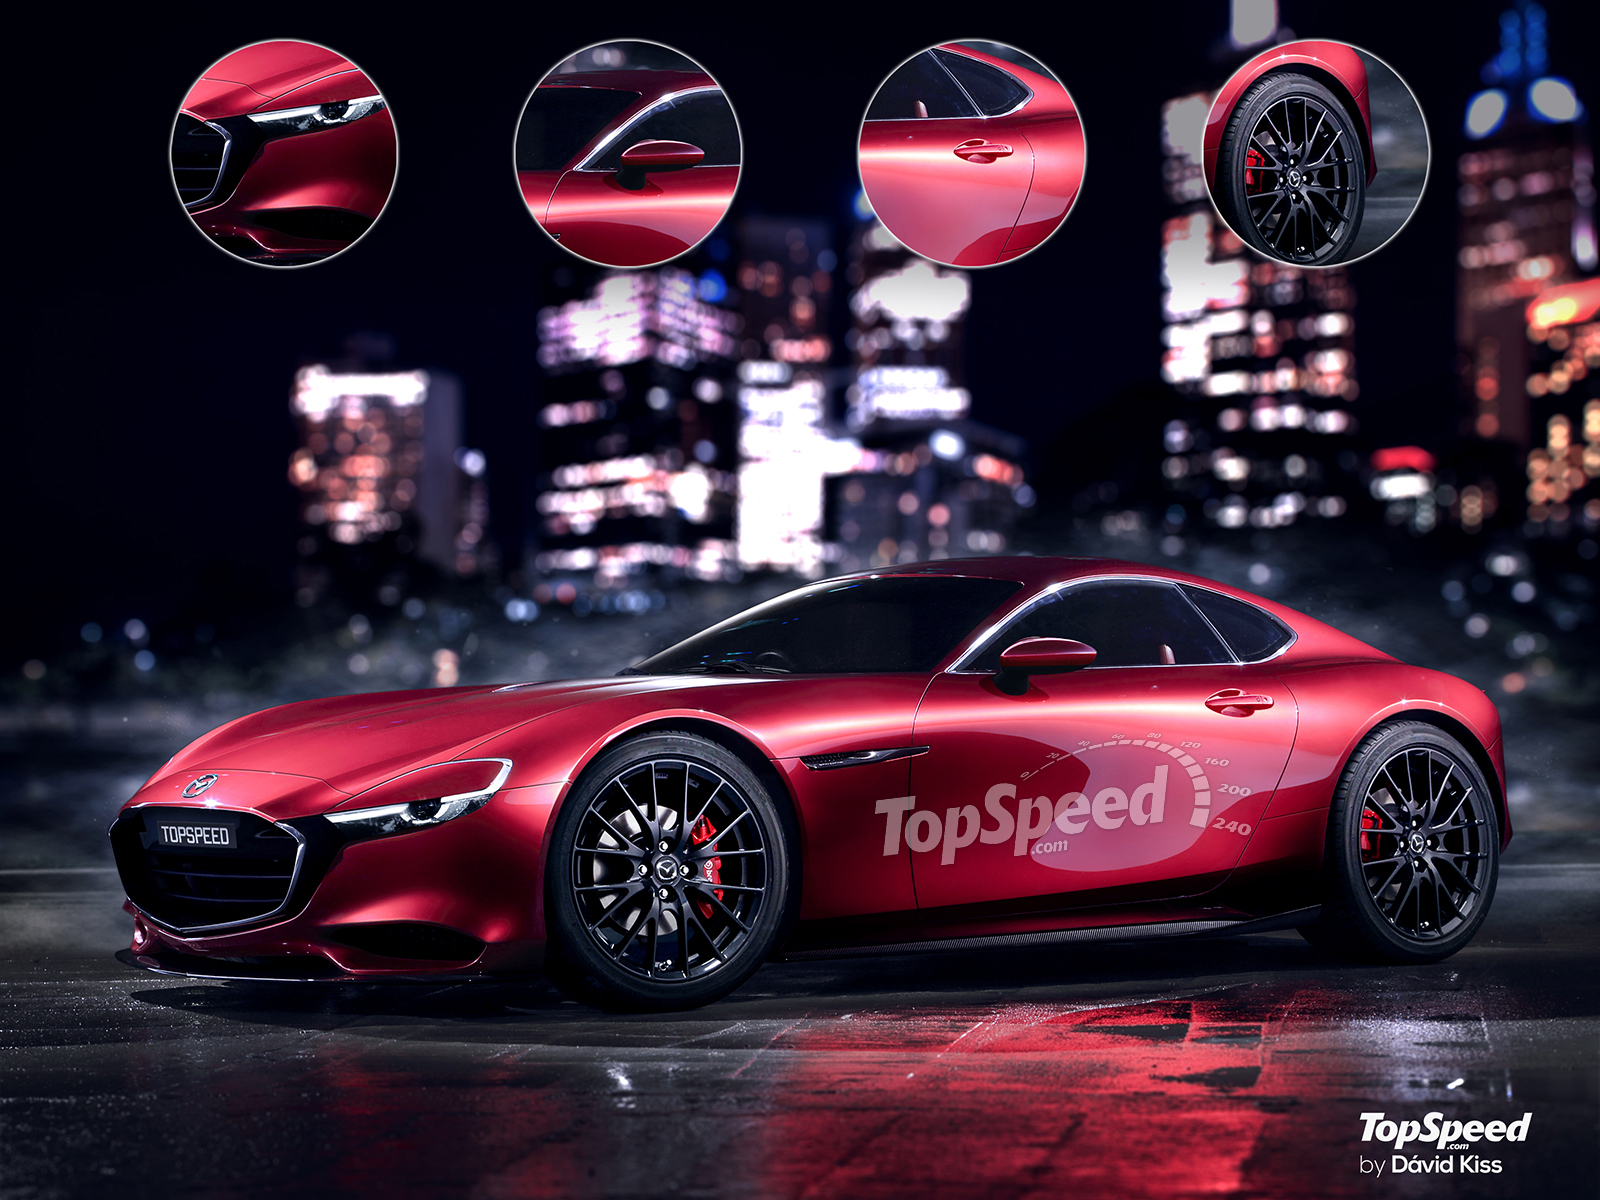 2018 Mazda Rx7 Price >> 2018 Mazda Rx 7 Top Speed